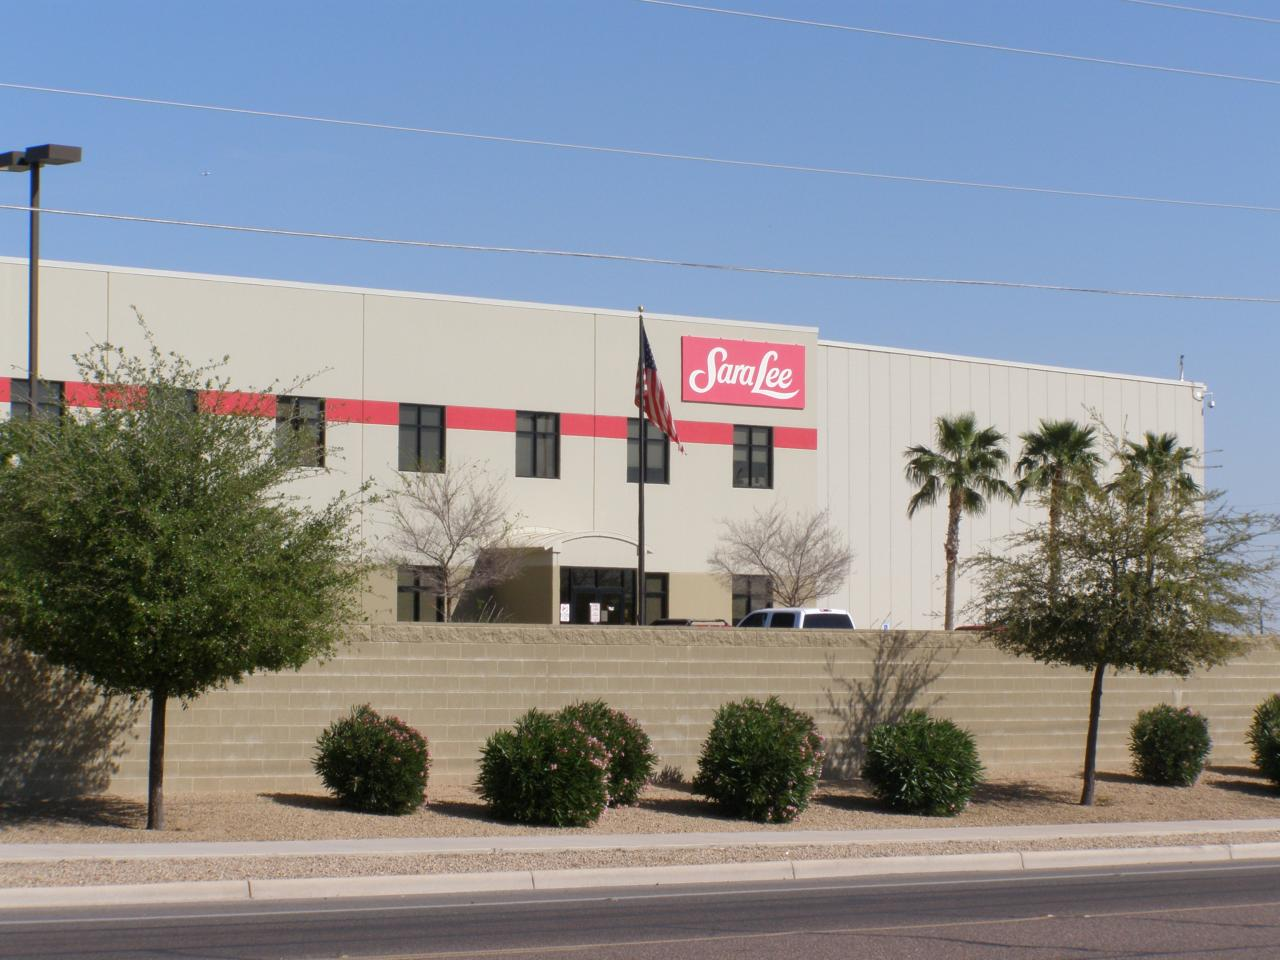 SaraLee Distribution Center - S&W Land Surveying Services